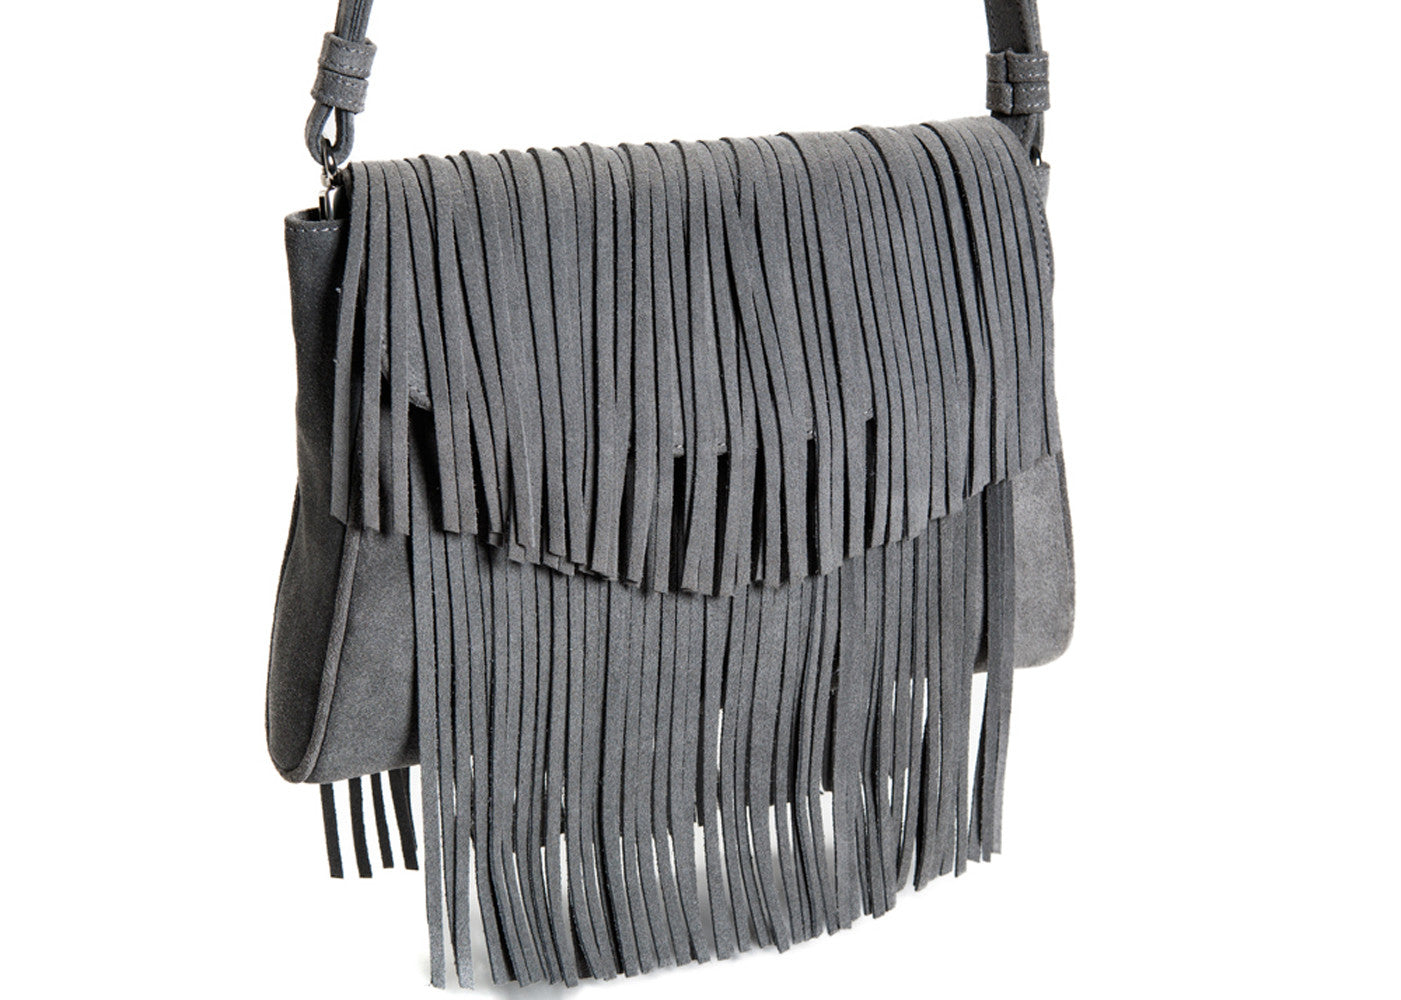 The 'Visions of Vogue' Grey Suede Fringe Handbag | Detail View | Mel Boteri